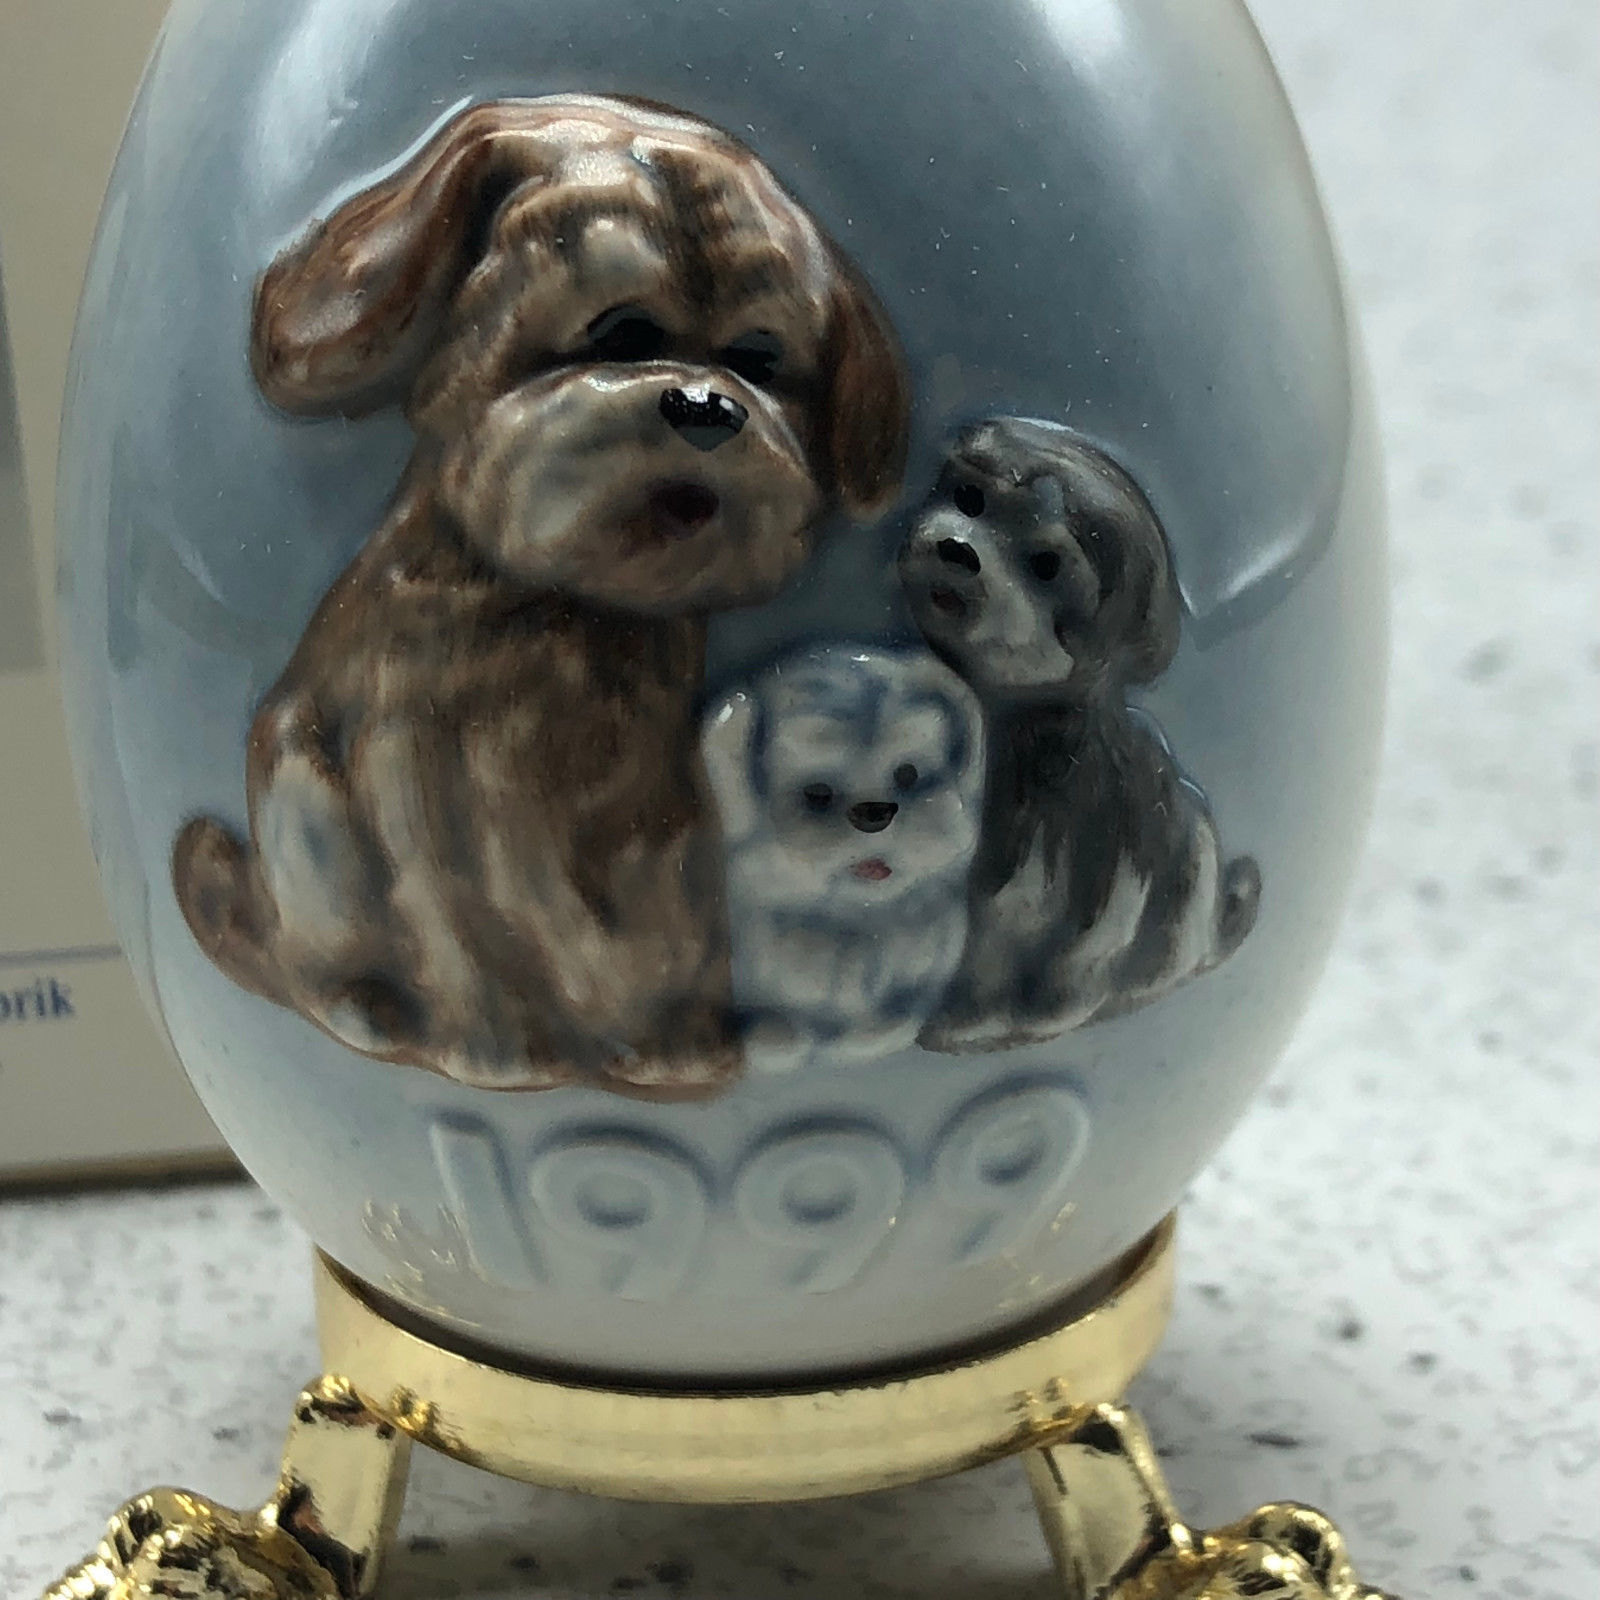 1999 GOEBEL ANNUAL EASTER EGG West Germany 22nd edition figurine 102737 puppies